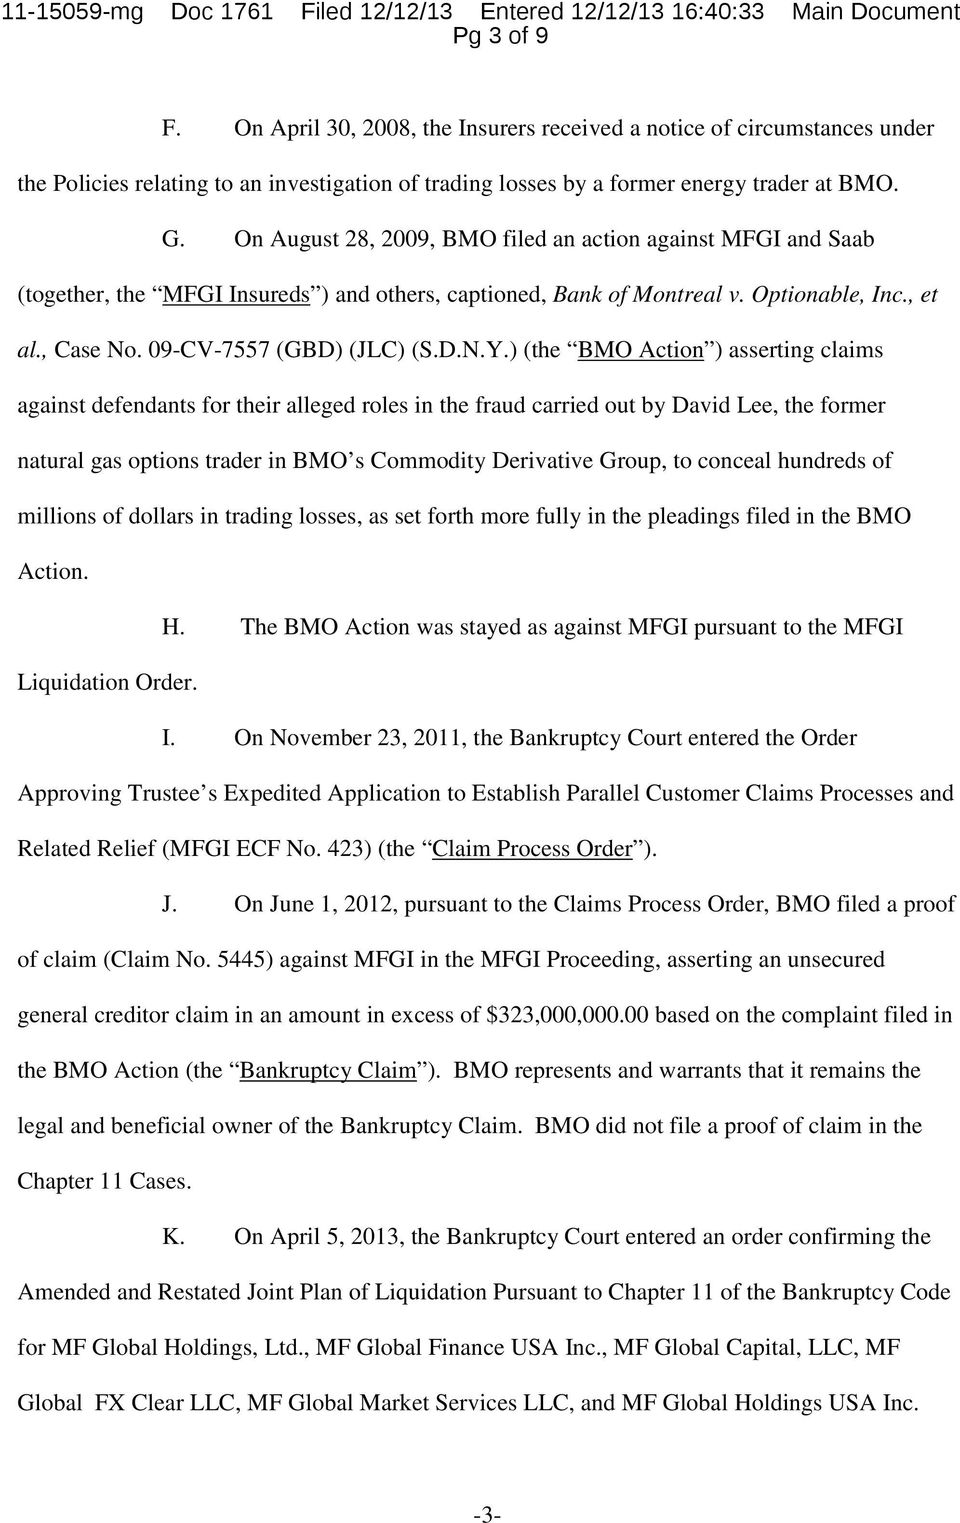 On August 28, 2009, BMO filed an action against MFGI and Saab (together, the MFGI Insureds ) and others, captioned, Bank of Montreal v. Optionable, Inc., et al., Case No. 09-CV-7557 (GBD) (JLC) (S.D.N.Y.